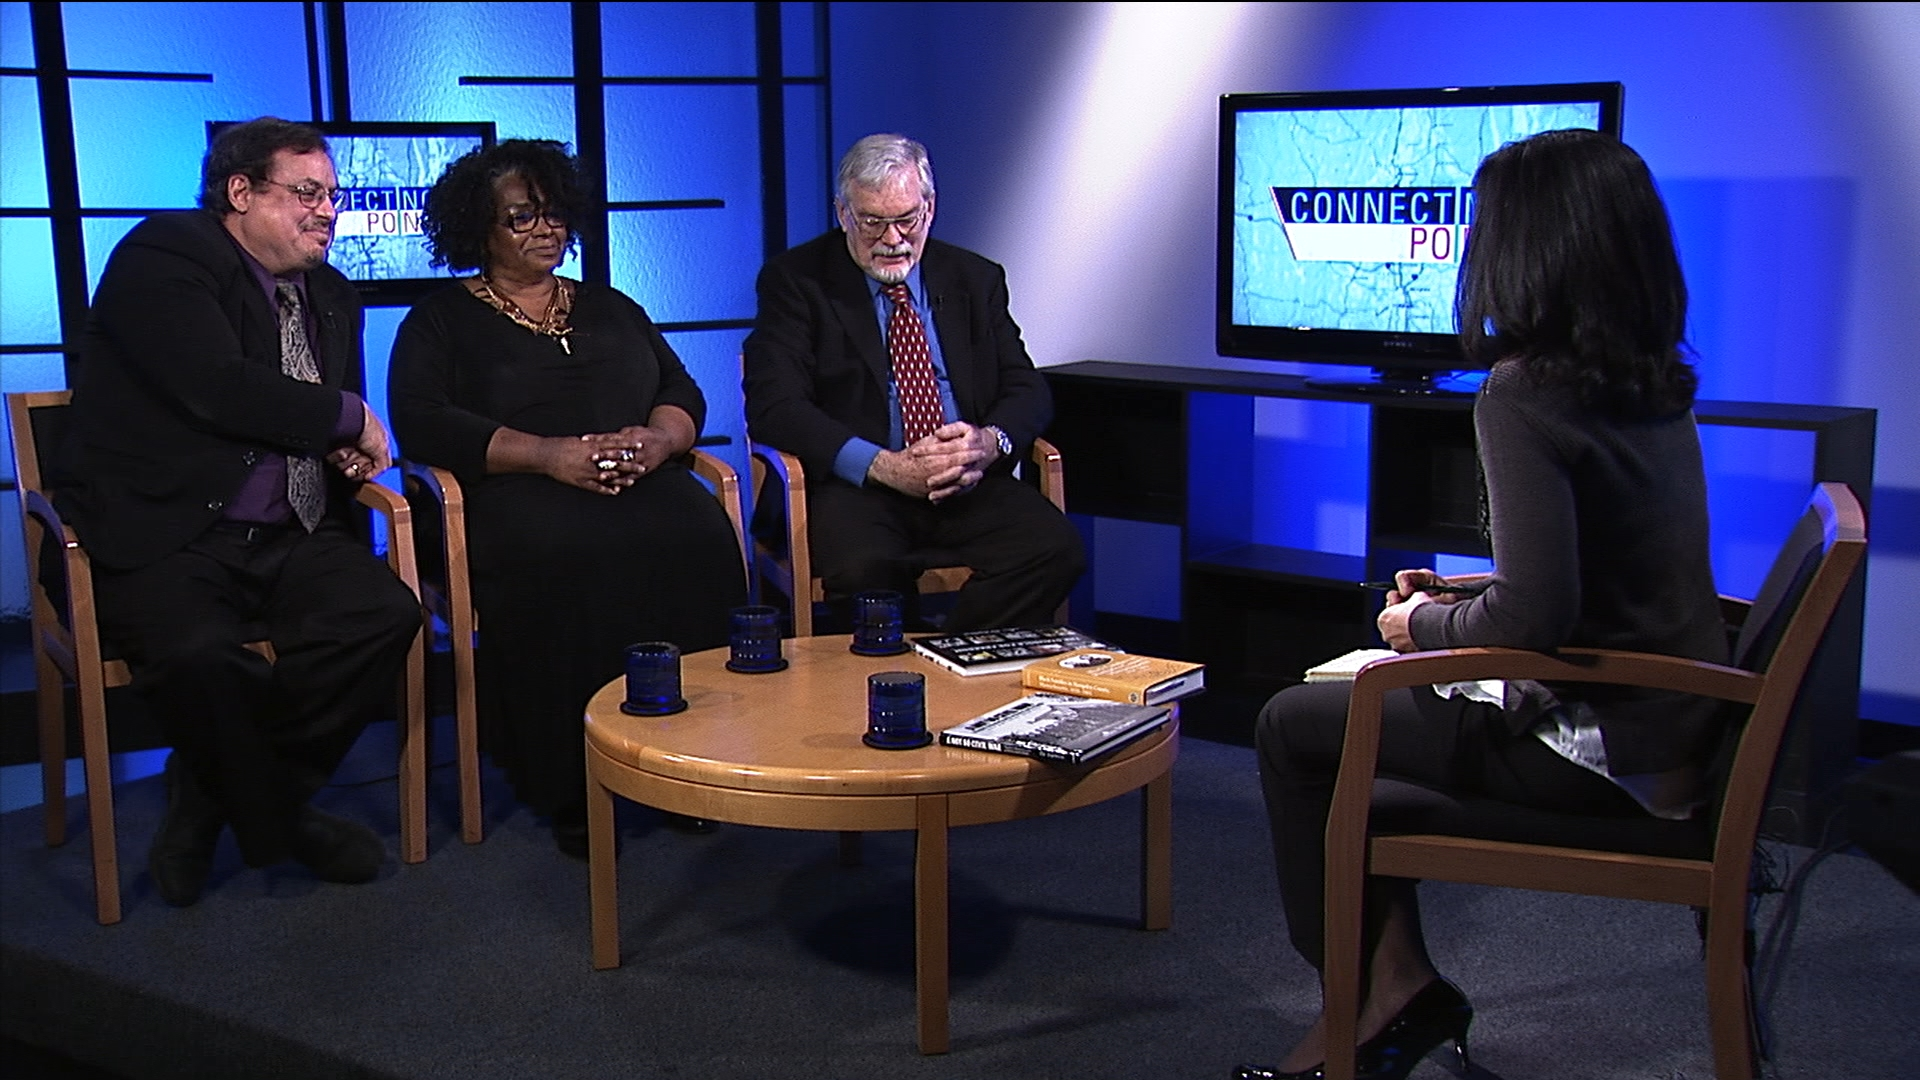 Director of Springfield Museums LuJuana Hood, Former Director Joe Carvalho, and Republican Executive Editor Wayne Phaneuf discuss the history of slavery & the Underground Railroad in Western Mass on Connecting Point